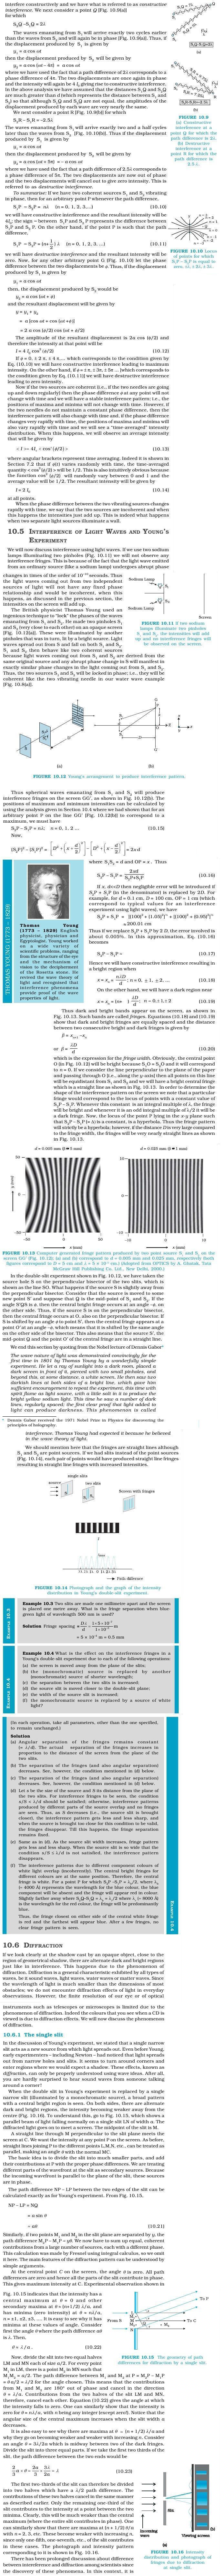 NCERT Class XII Physics Chapter 10 - Wave Optics